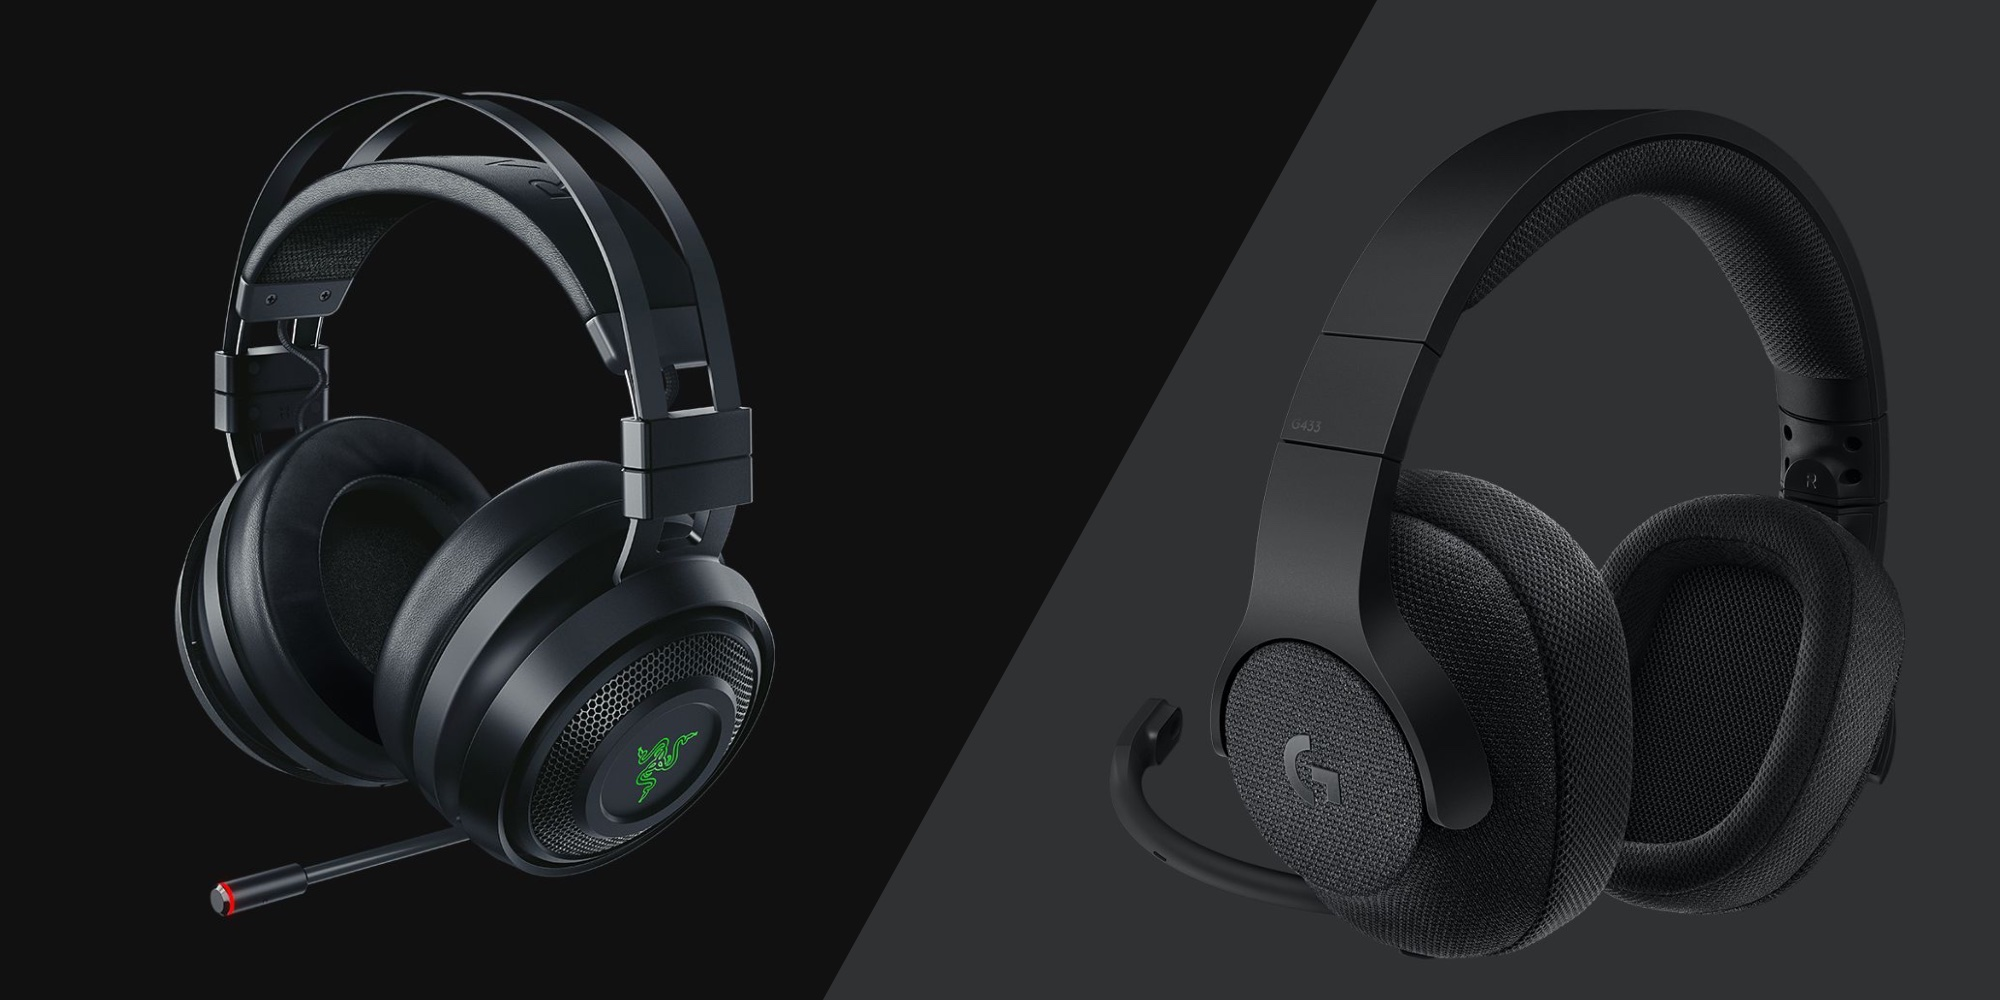 Level up your game with Logitech's G433 7.1 Wired Headset at $60 (25% off), more from $130